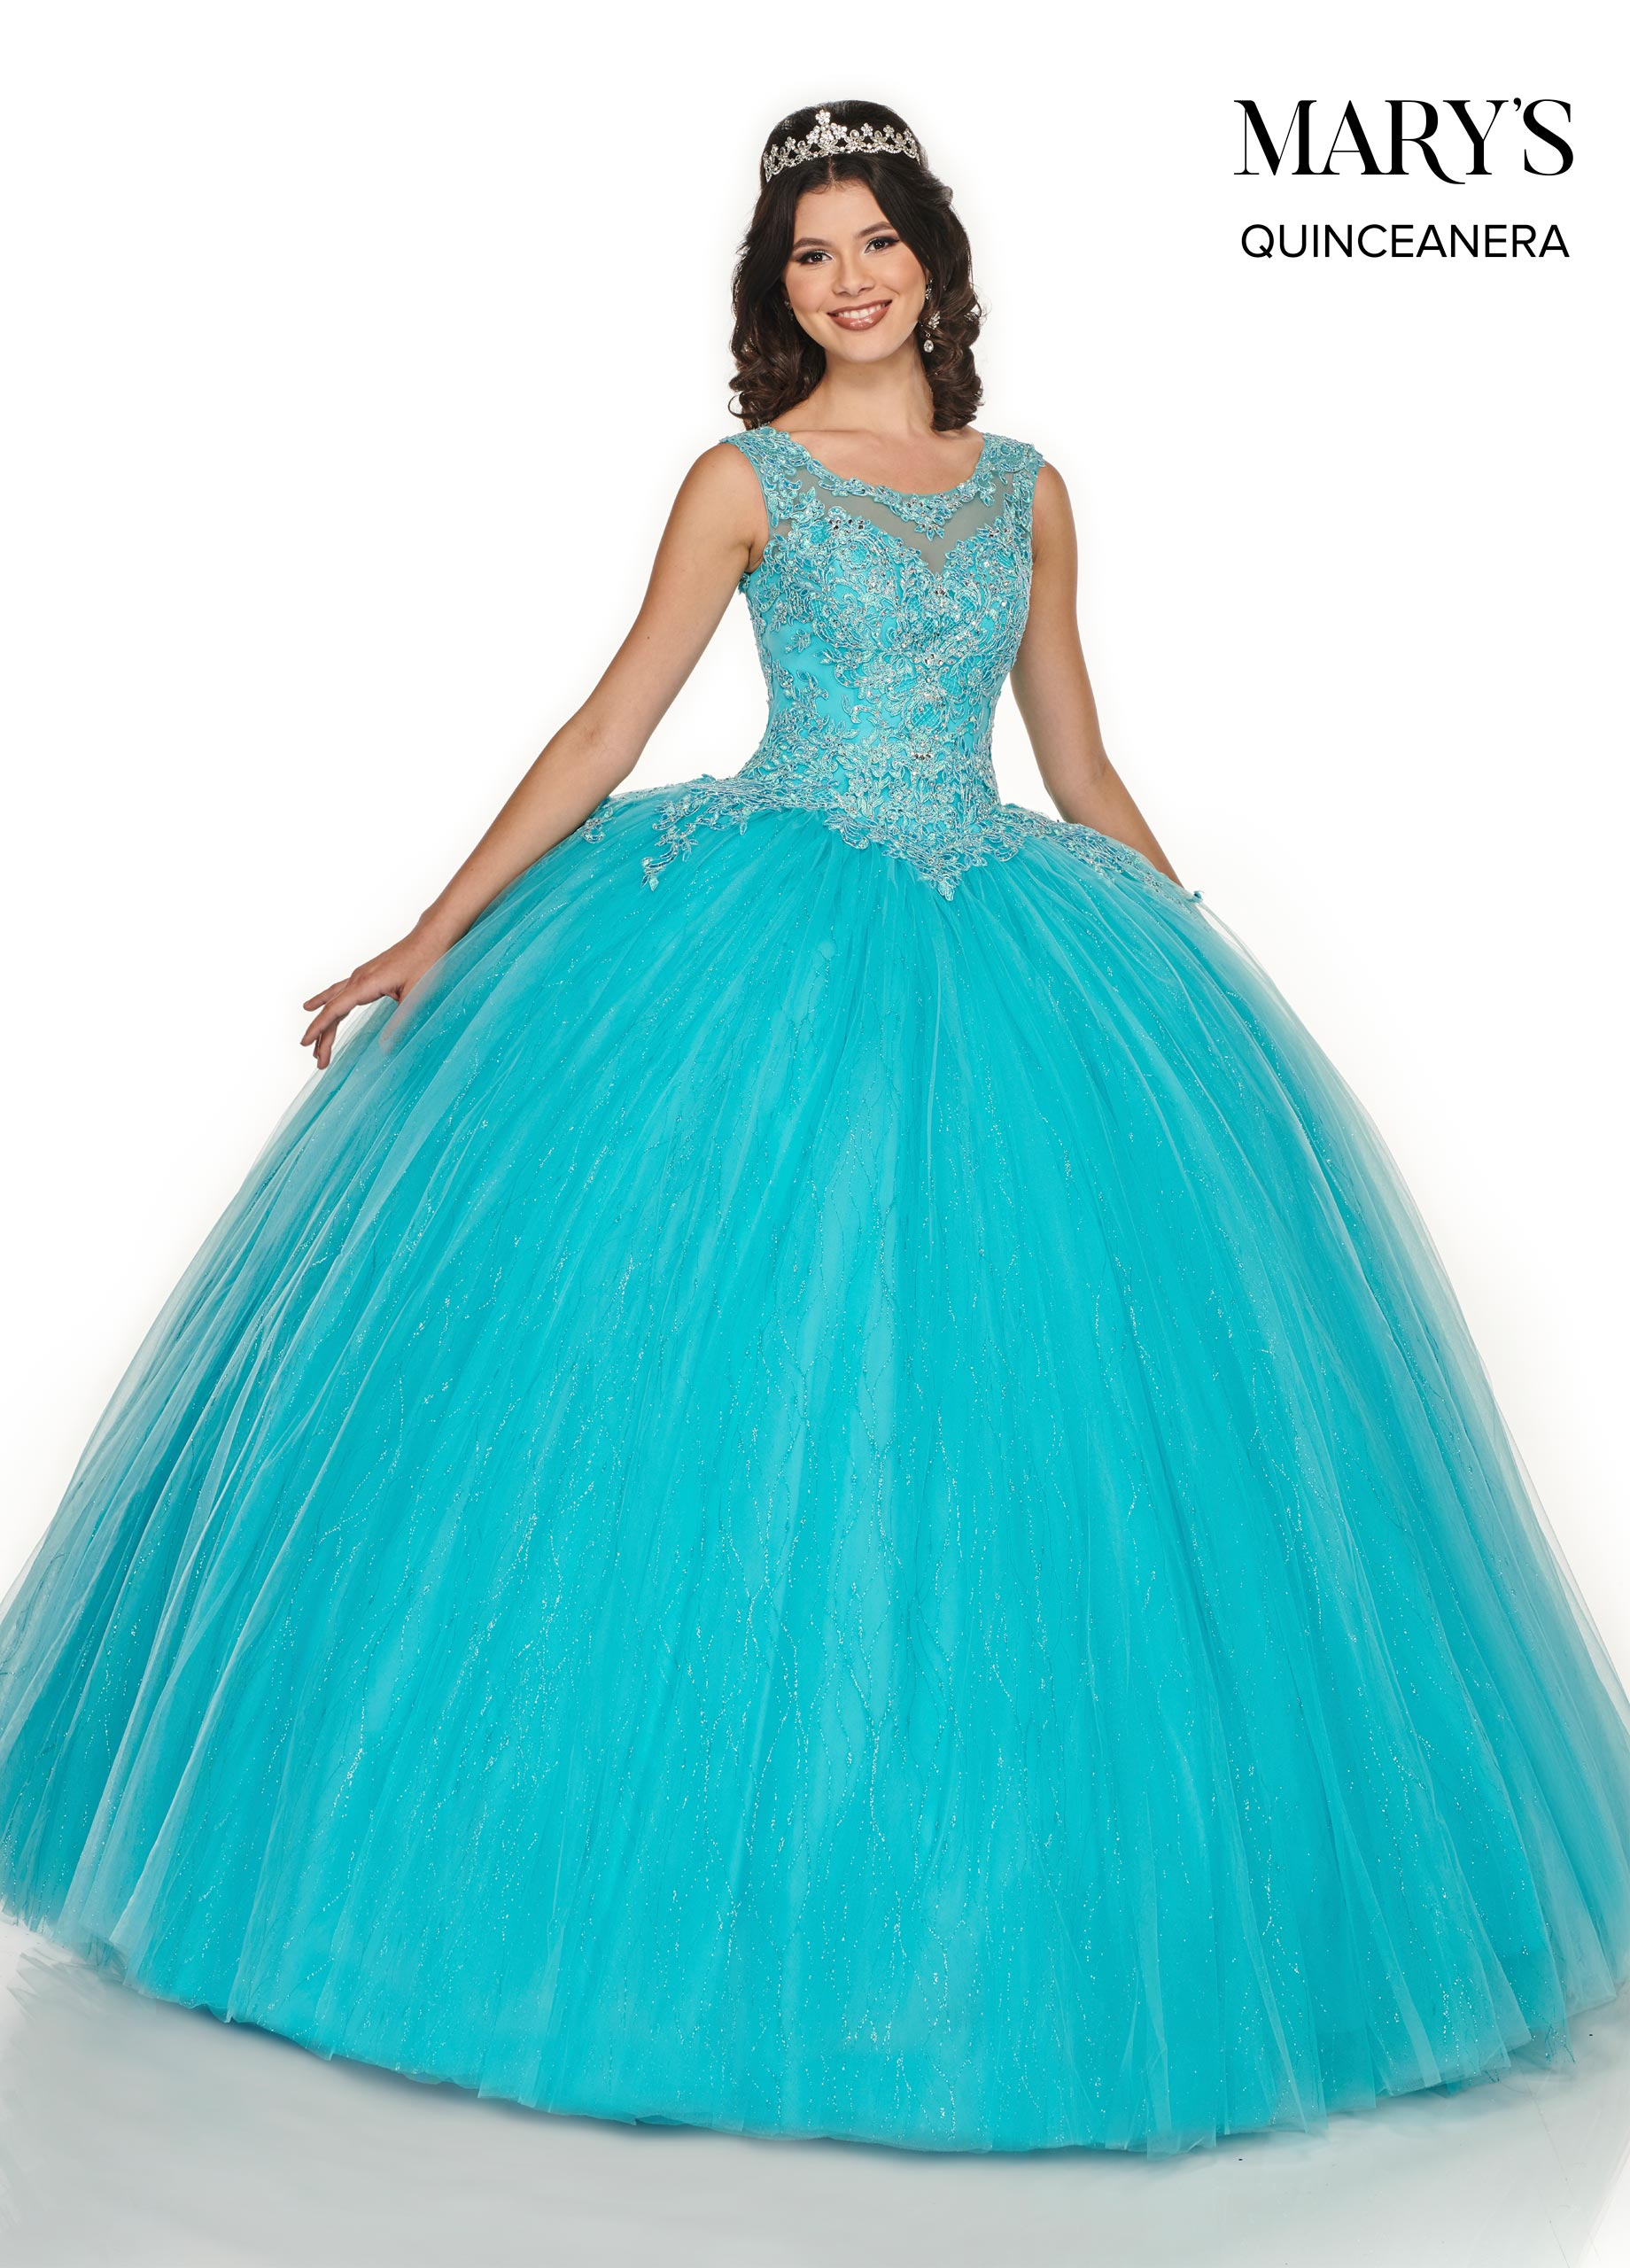 Marys Quinceanera Dresses | Mary's Quinceanera | Style - MQ2080